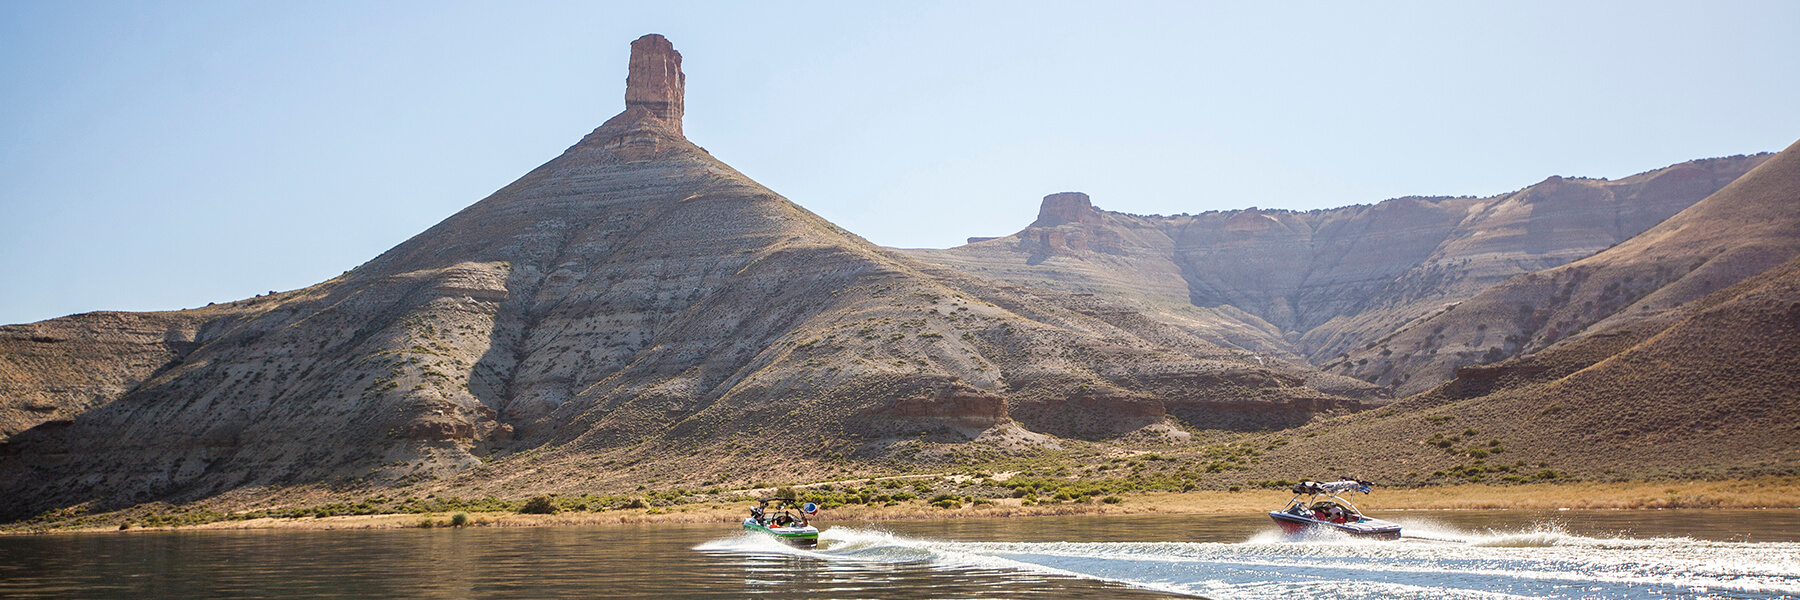 Boating in Flaming Gorge National Recreation Area